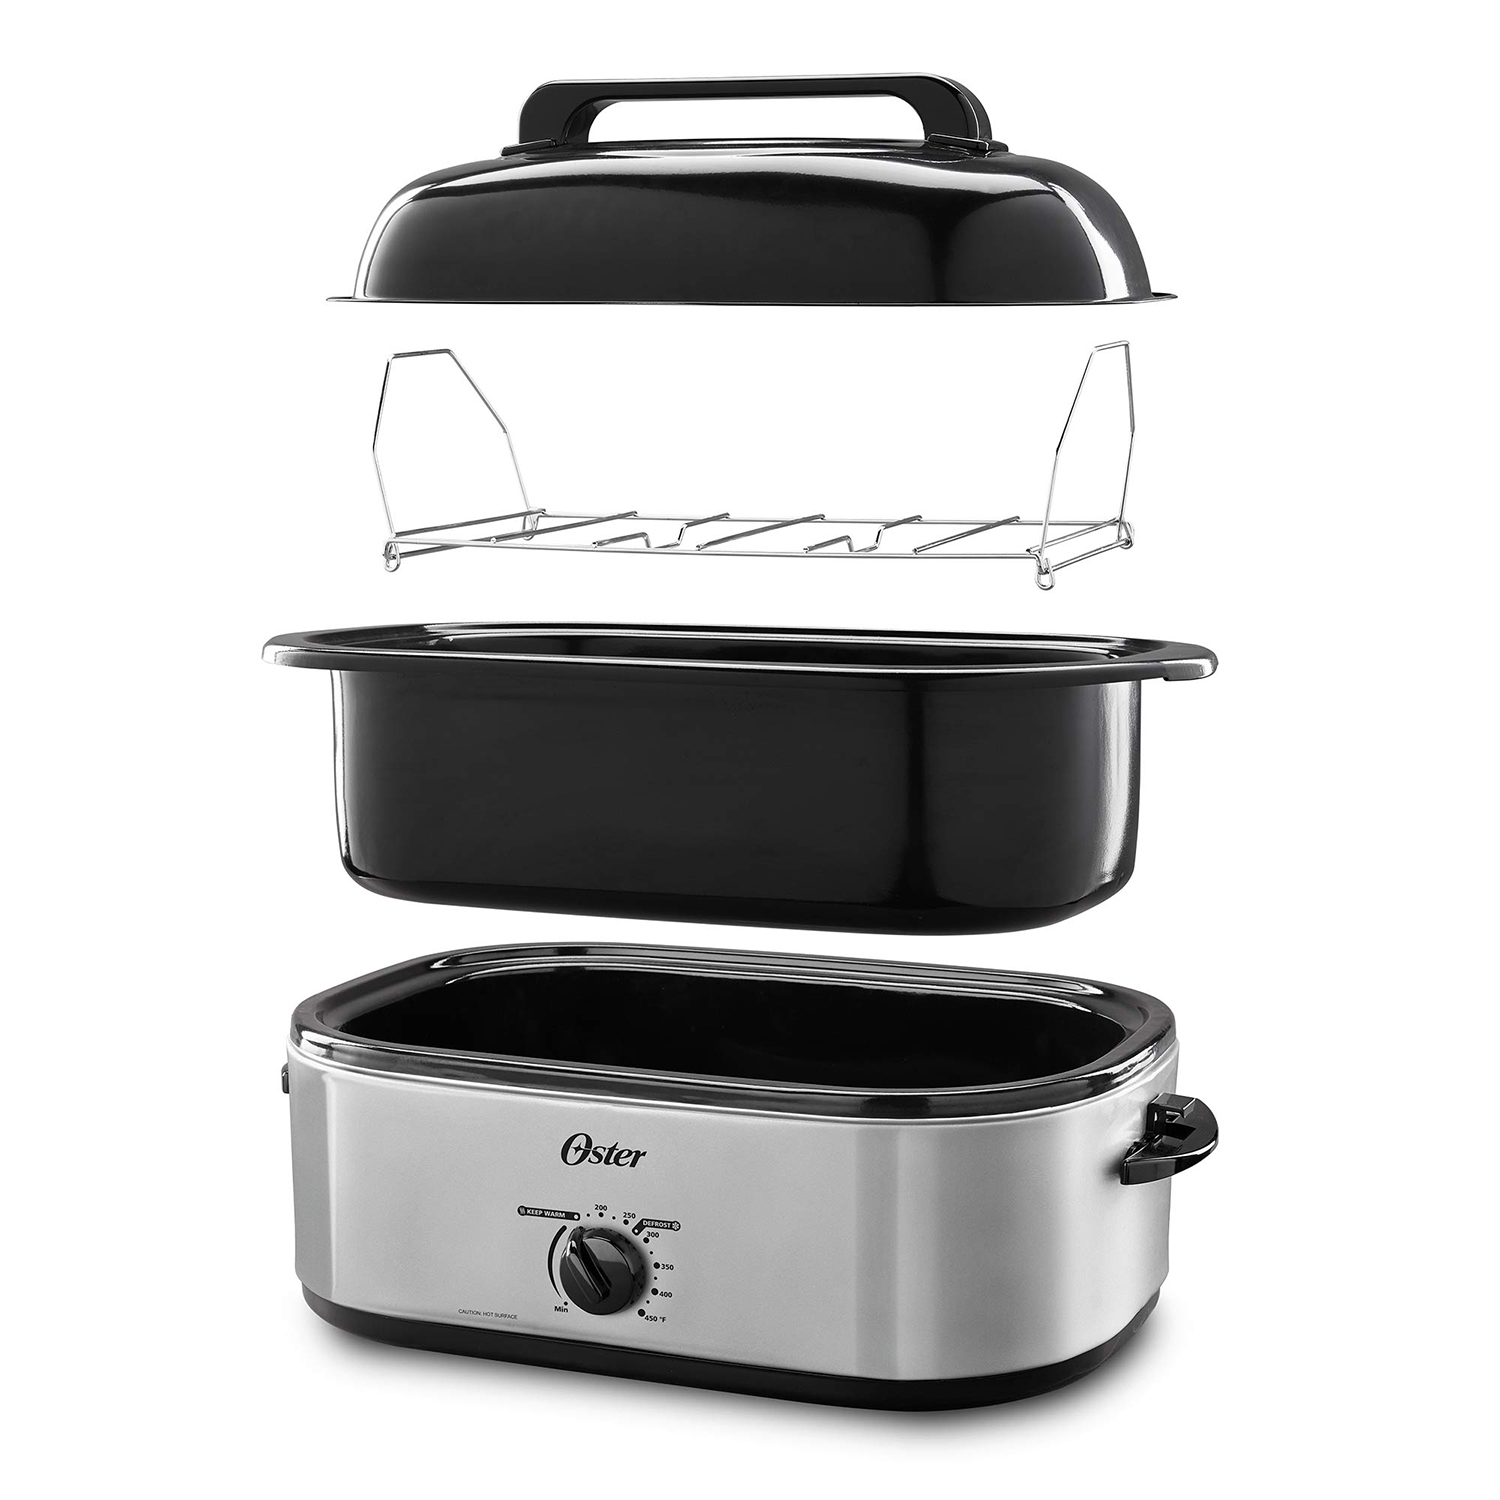 Oster 18 Quart Silver Roaster with High Dome & Self-Basting Lid